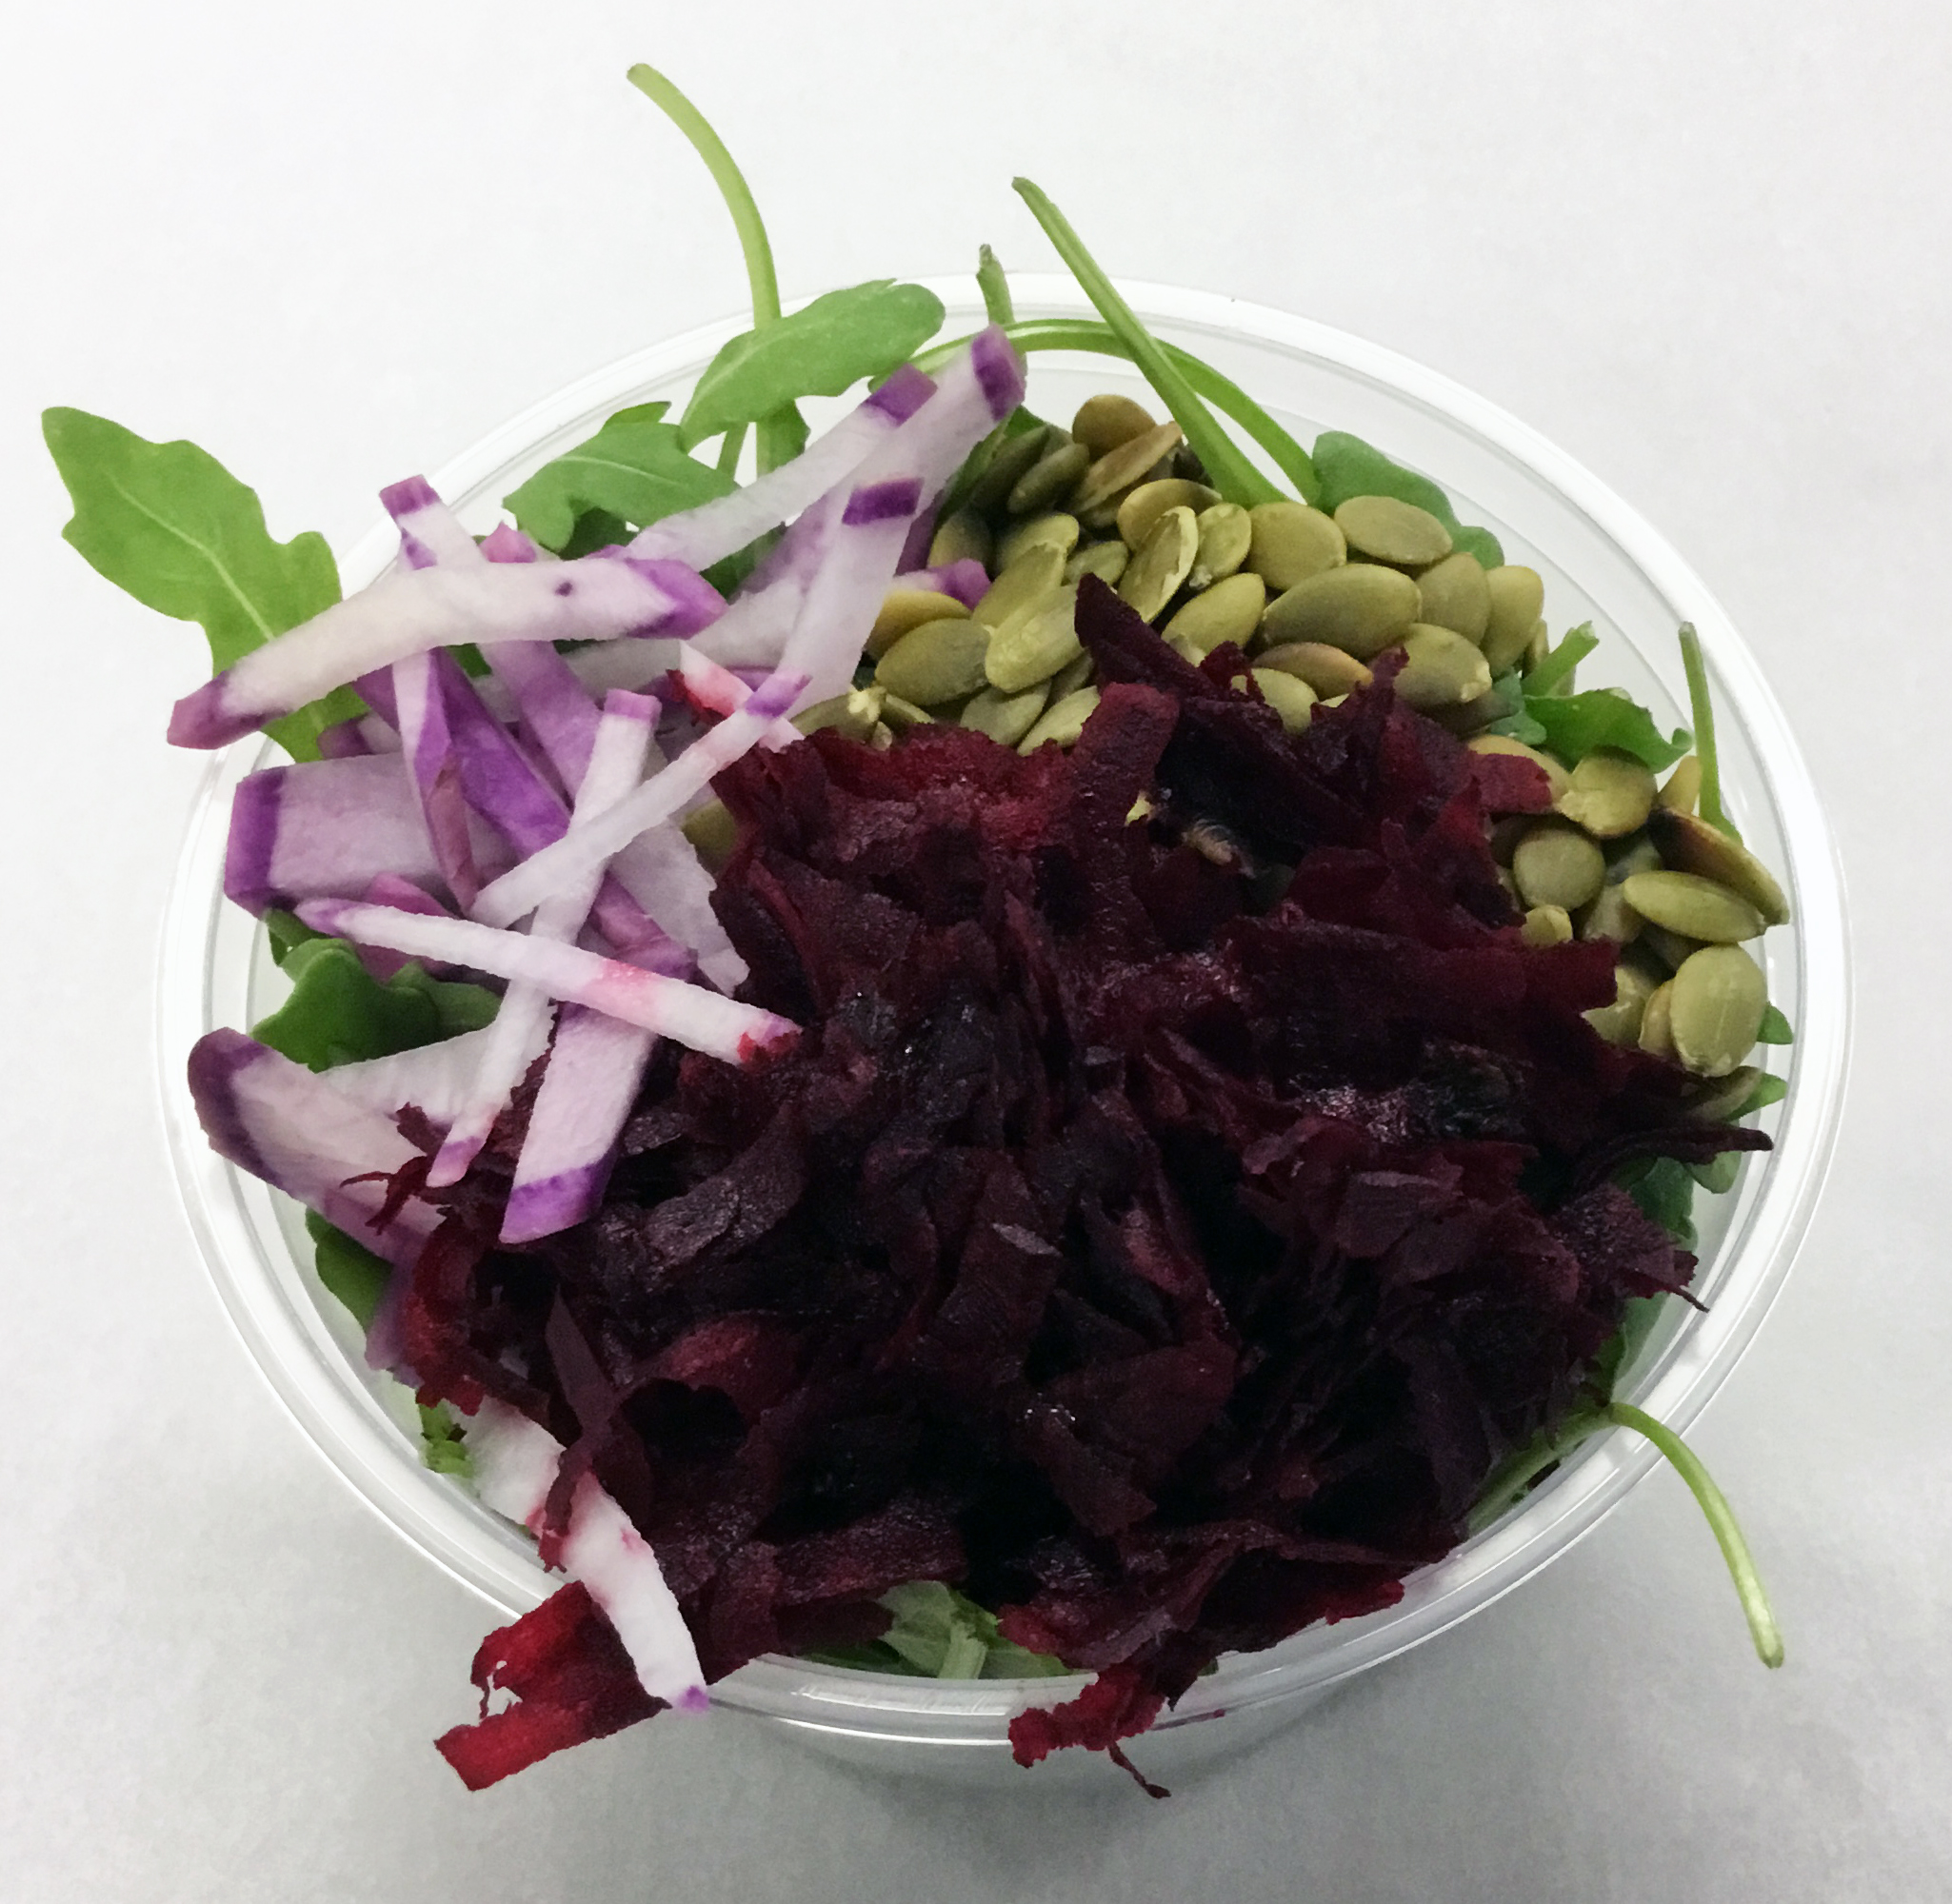 Baby arugula with red beets, purple radish and roasted pumpkin seeds.